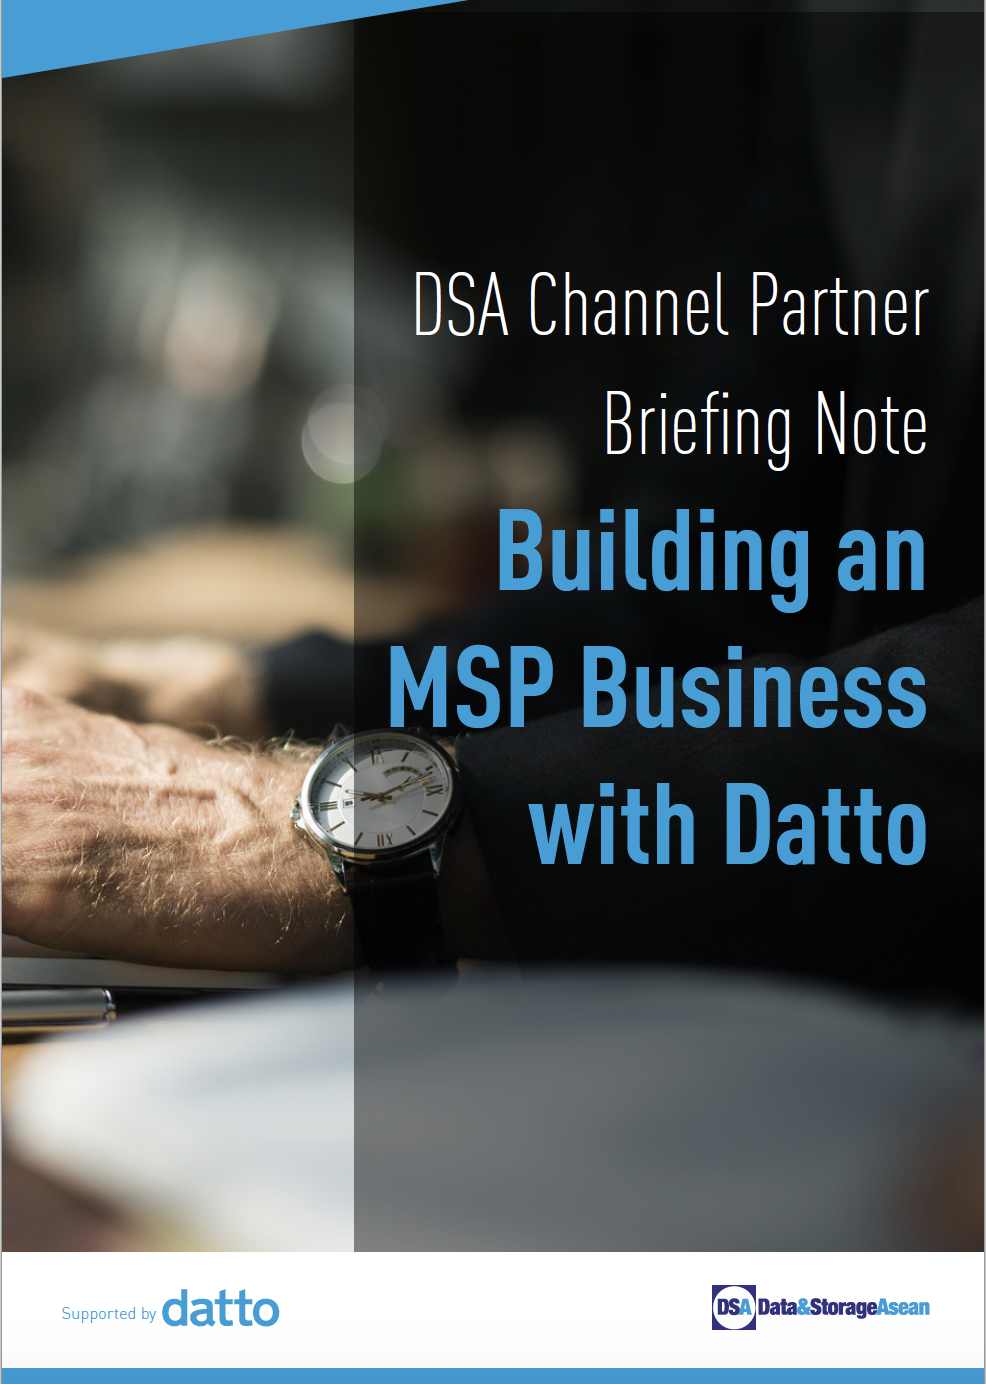 DSA Channel Partner Briefing Note Building an MSP Business with Datto.pdf